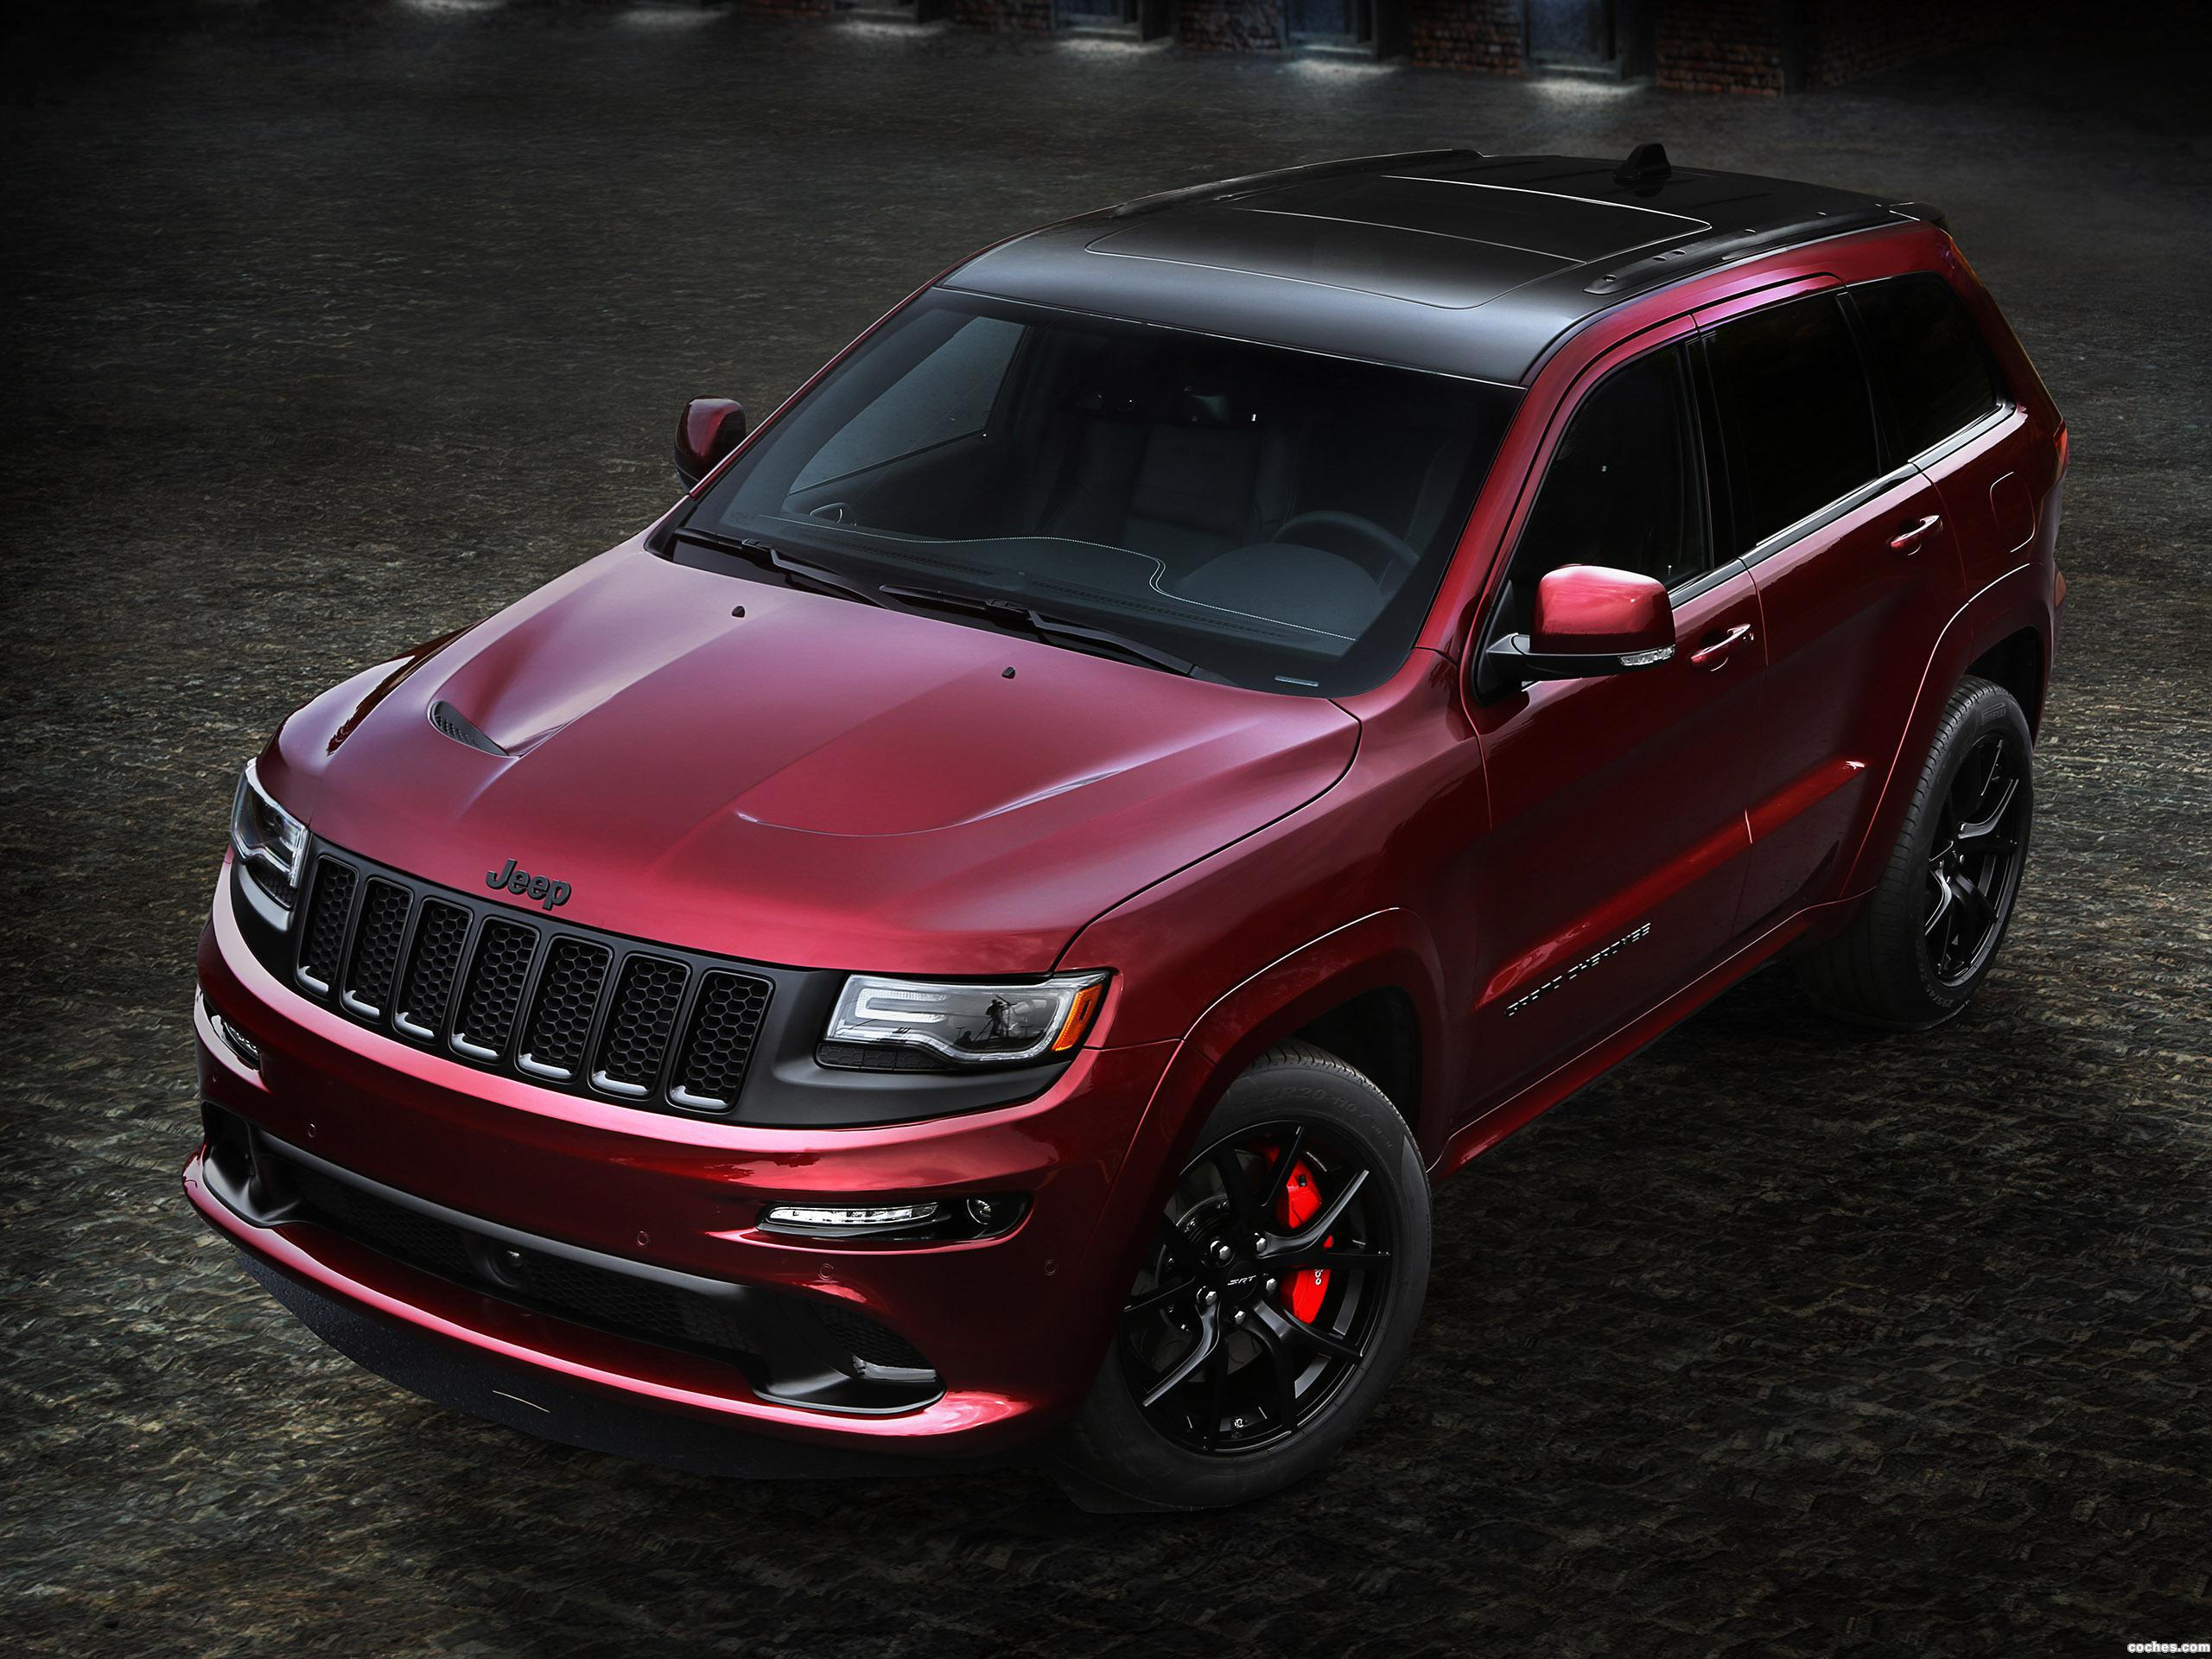 blackhawk fotos de a jeep cherokee galer la mayor del grand coches